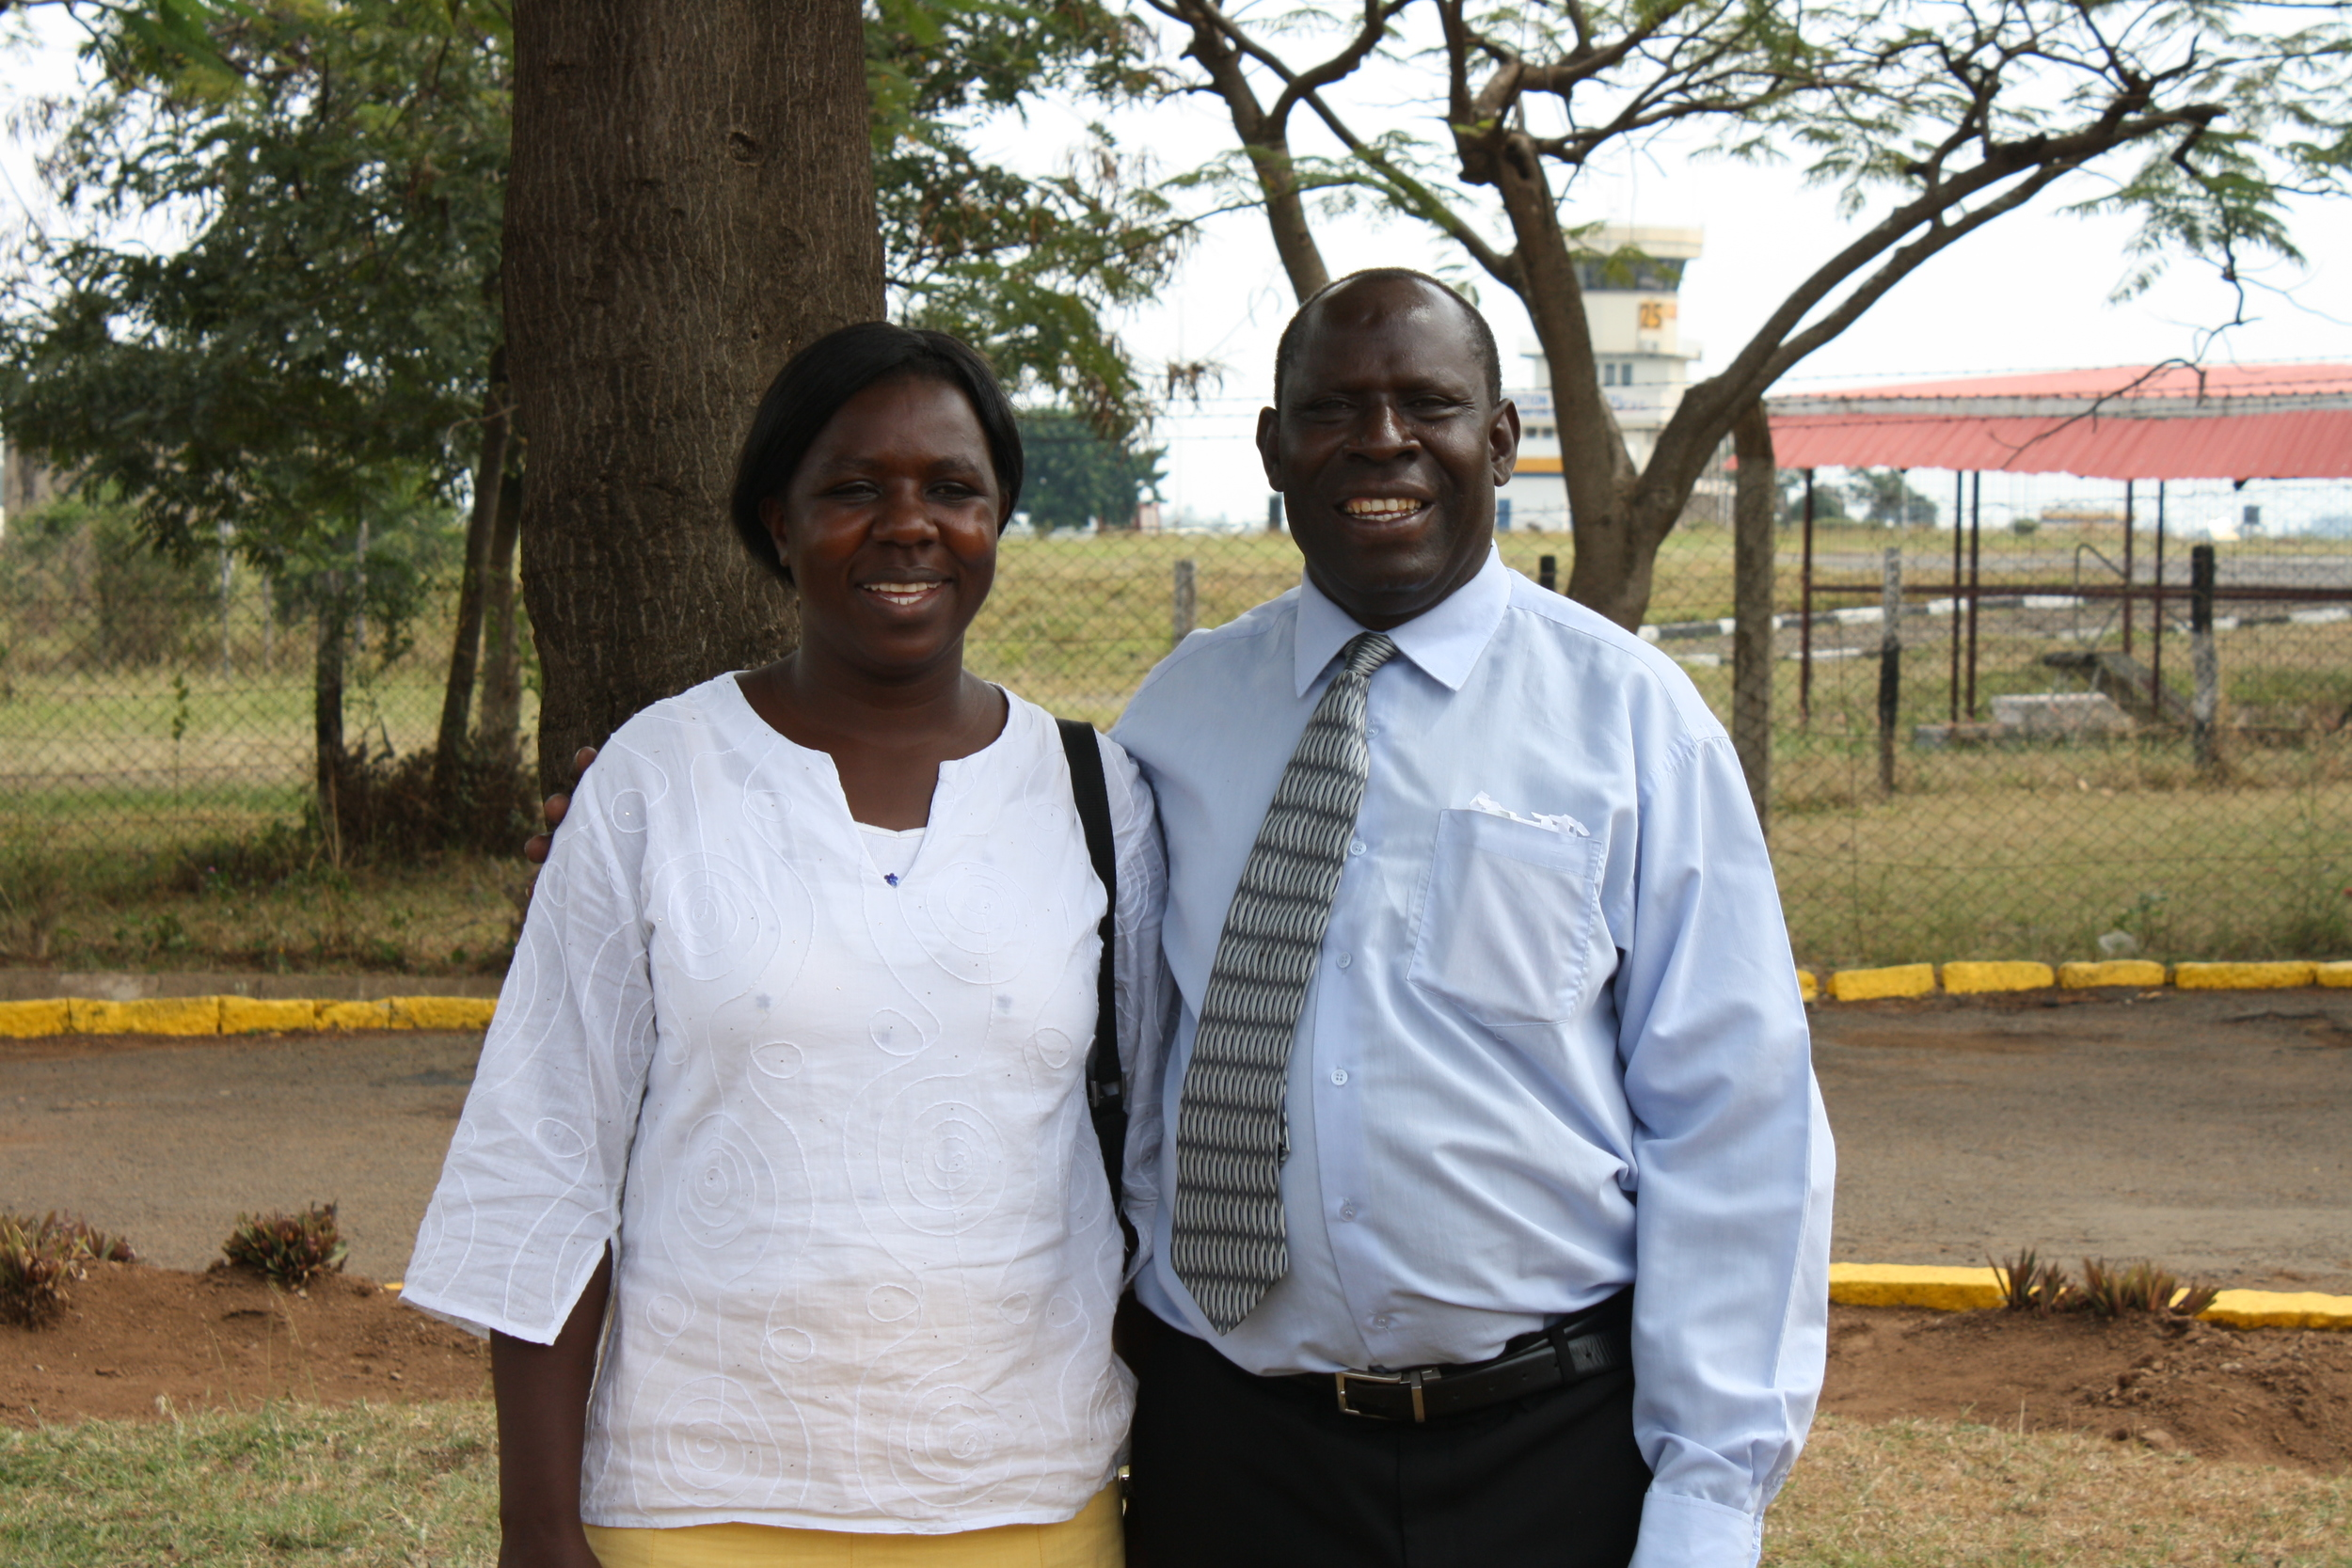 Kenya National Director for PIEI Benard Ondiek and his wife Pamela.